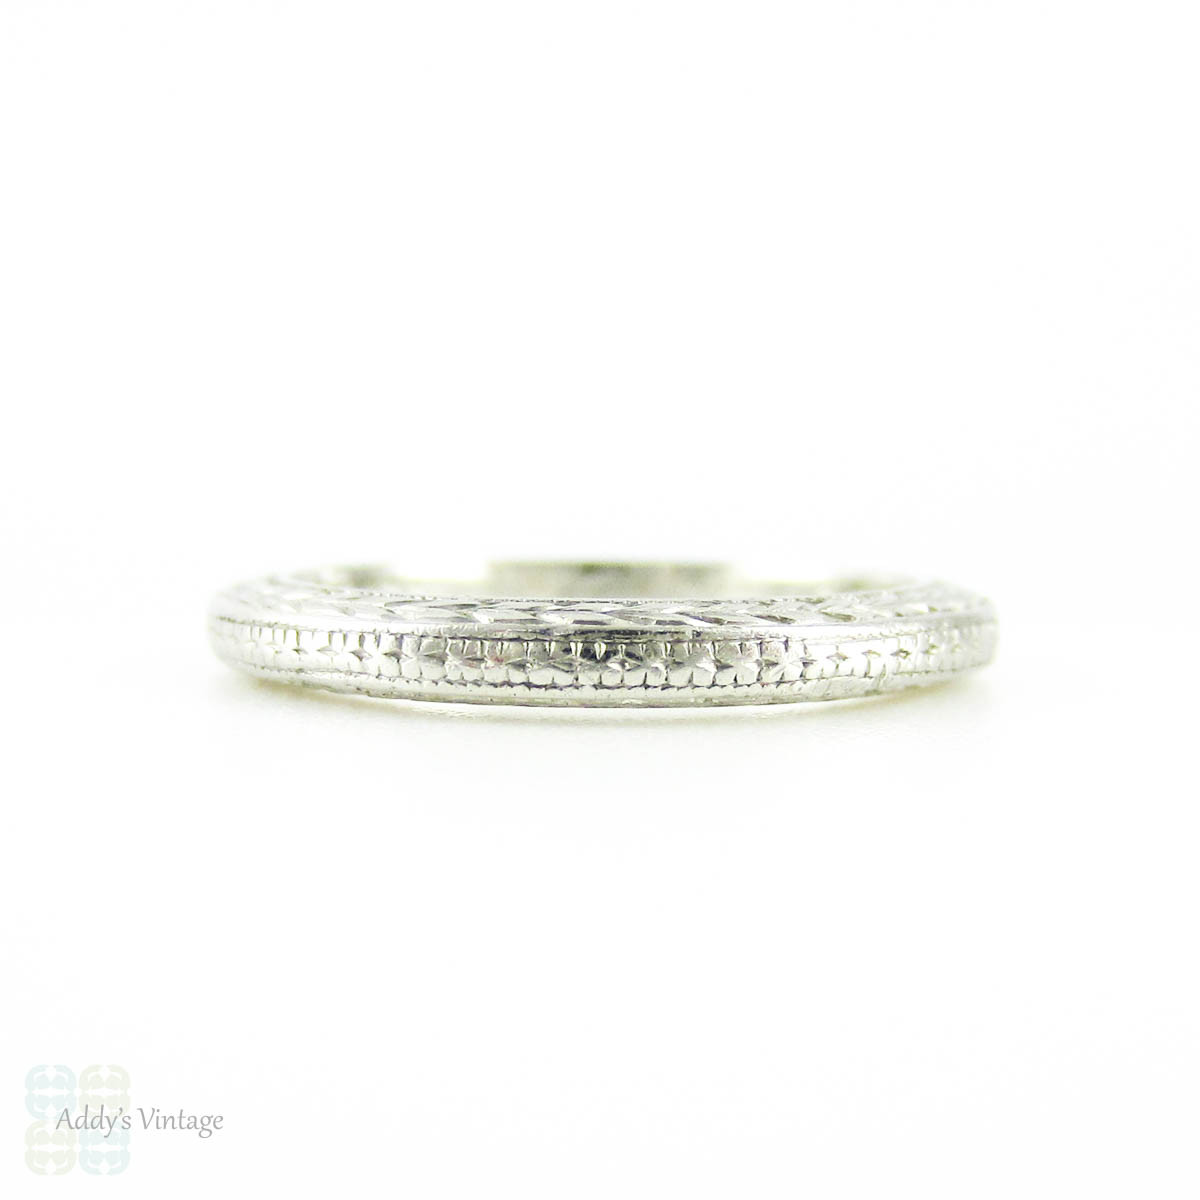 wedding engraved ring design pin band by antique platinum addy leaf bands